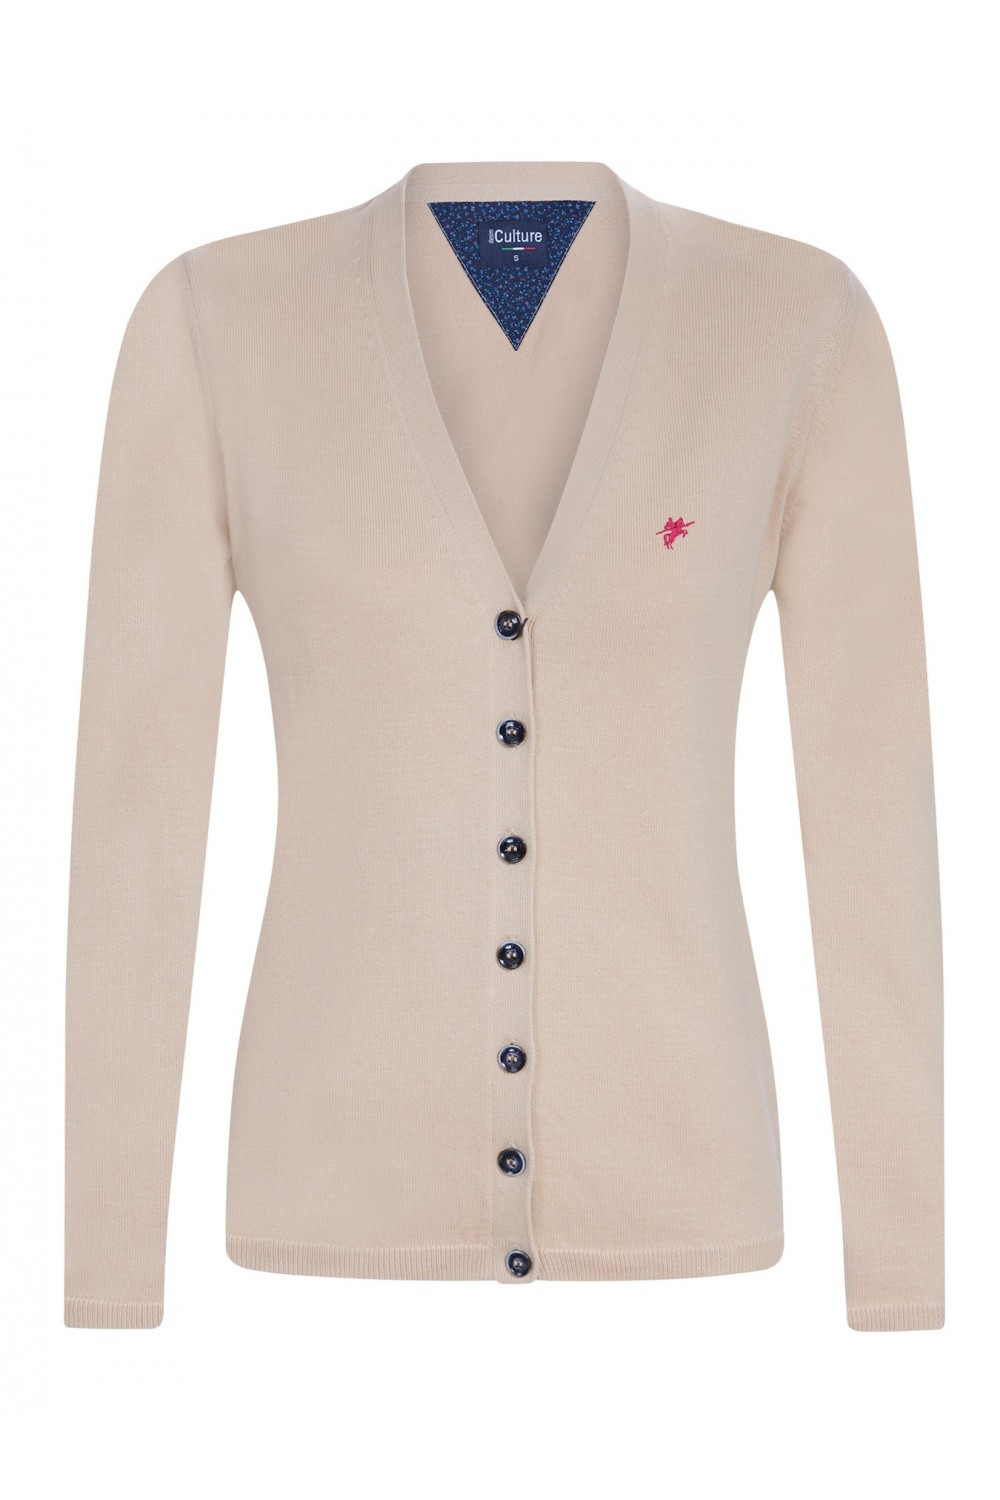 Women's Cardigan Button V-neck Heather Beige